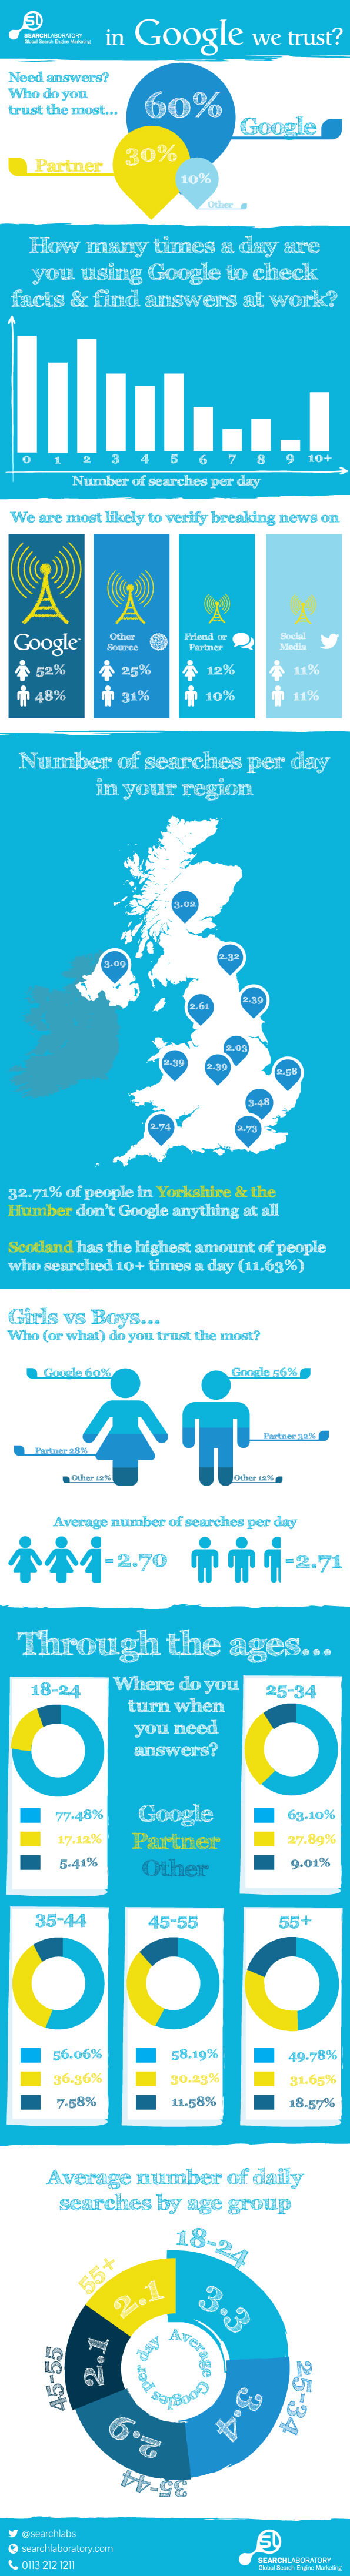 How Much Does the UK Trust Google?